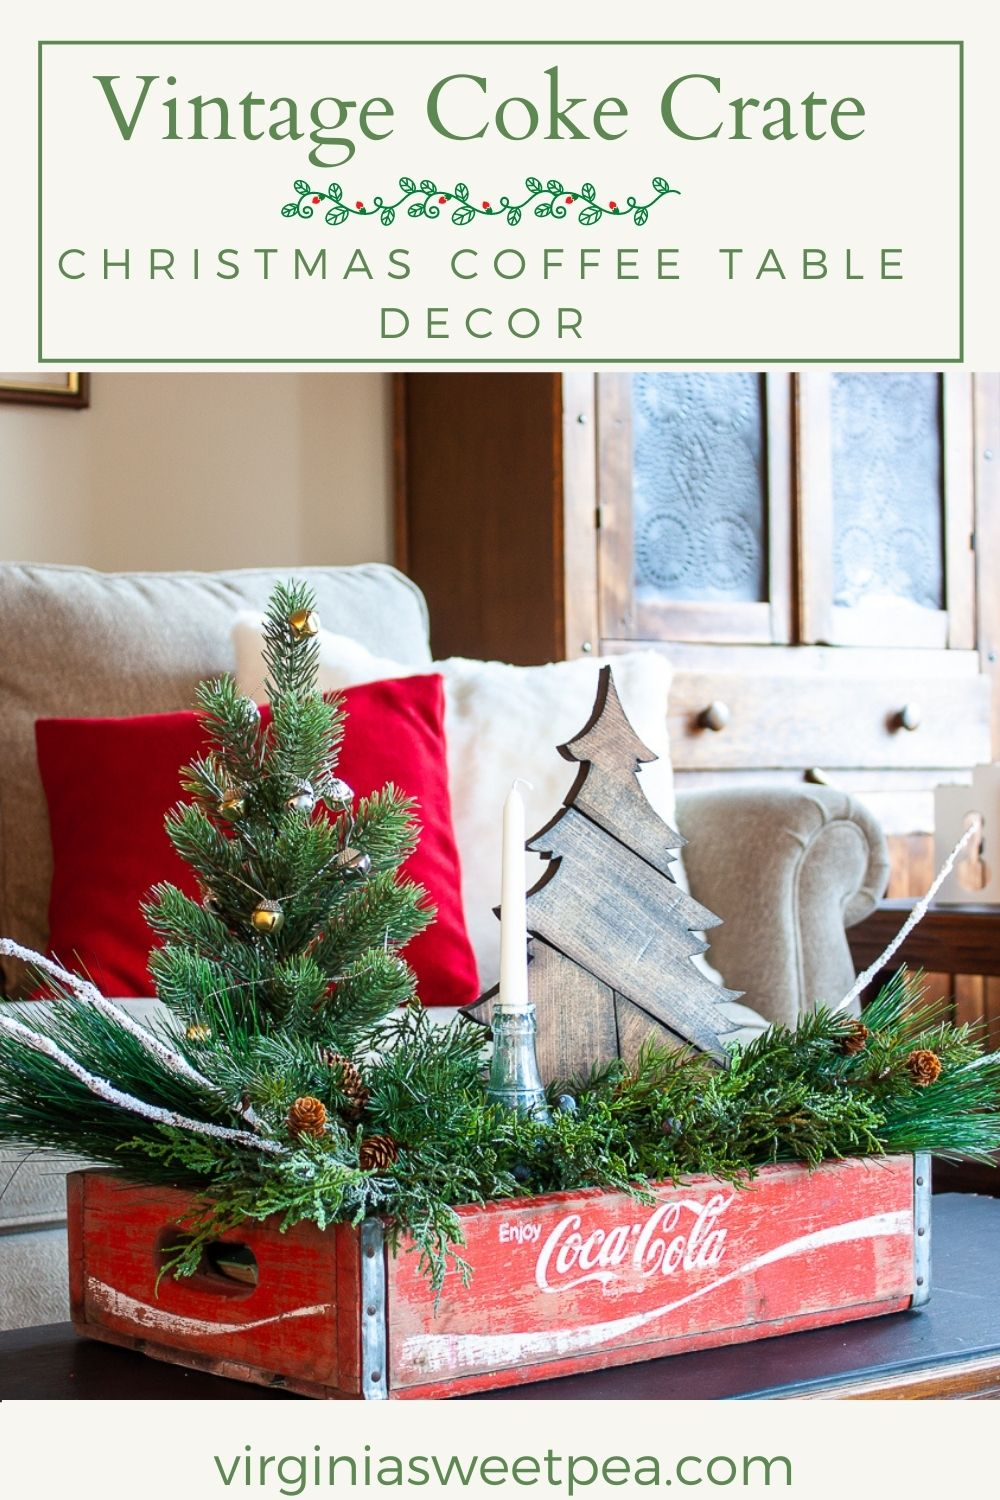 Vintage Coke Crate Christmas Coffee Table Decor - Puzzled over how to decorate your coffee table for Christmas?  Create a Christmas centerpiece for your coffee table using a vintage Coke crate and get a dozen more ideas for using crates for Christmas decor. via @spaula